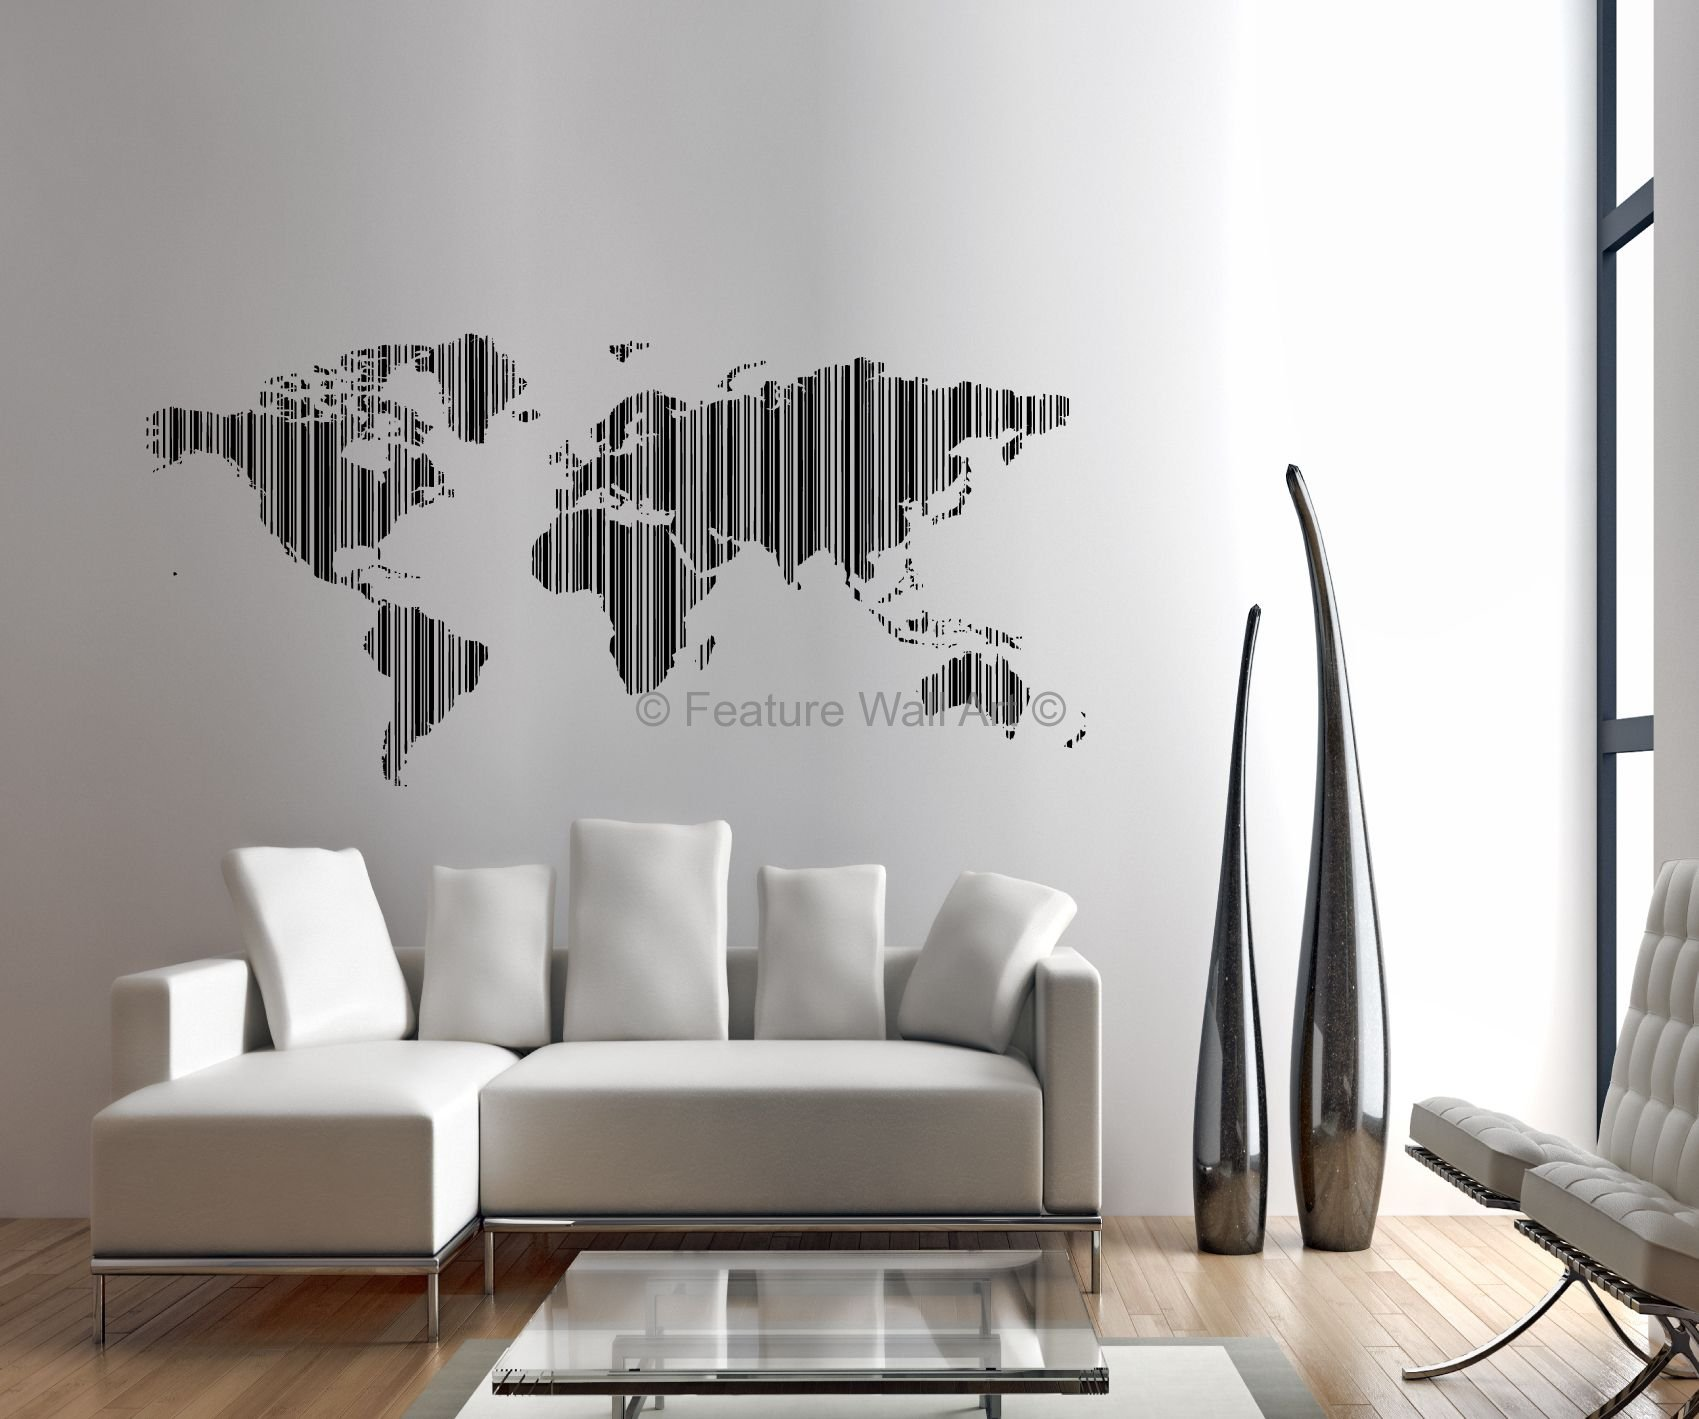 Merveilleux Incorporate Maps Into Your Wall Art Projects.